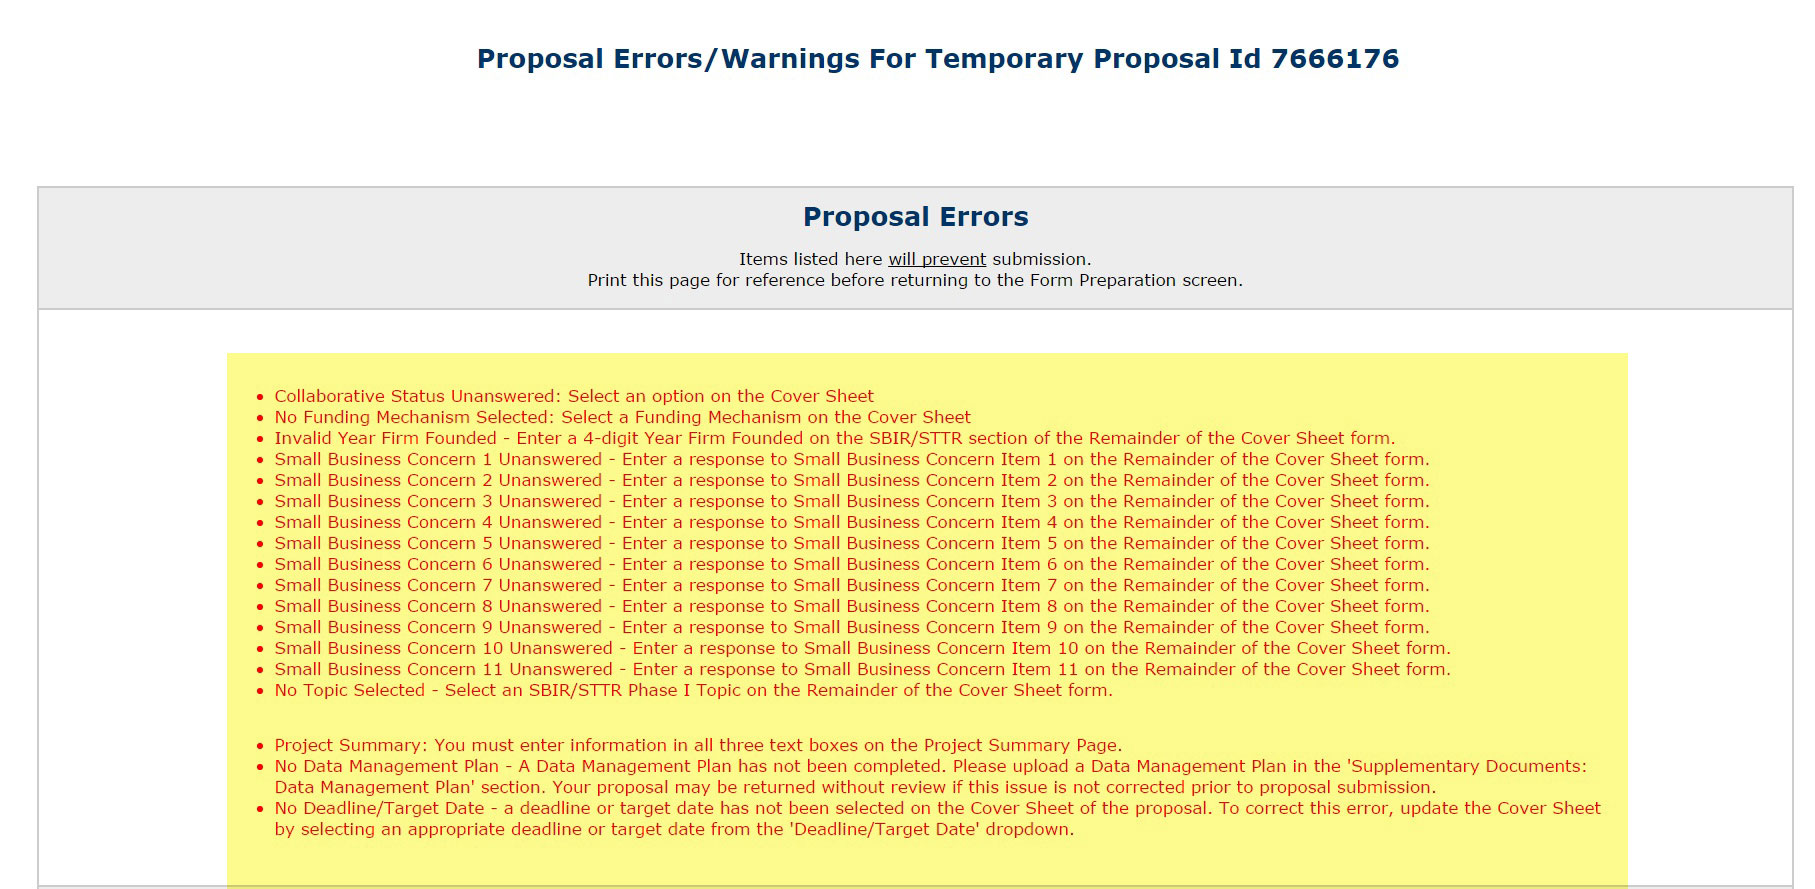 Proposal Errors/Warnings screen showing list of errors in red